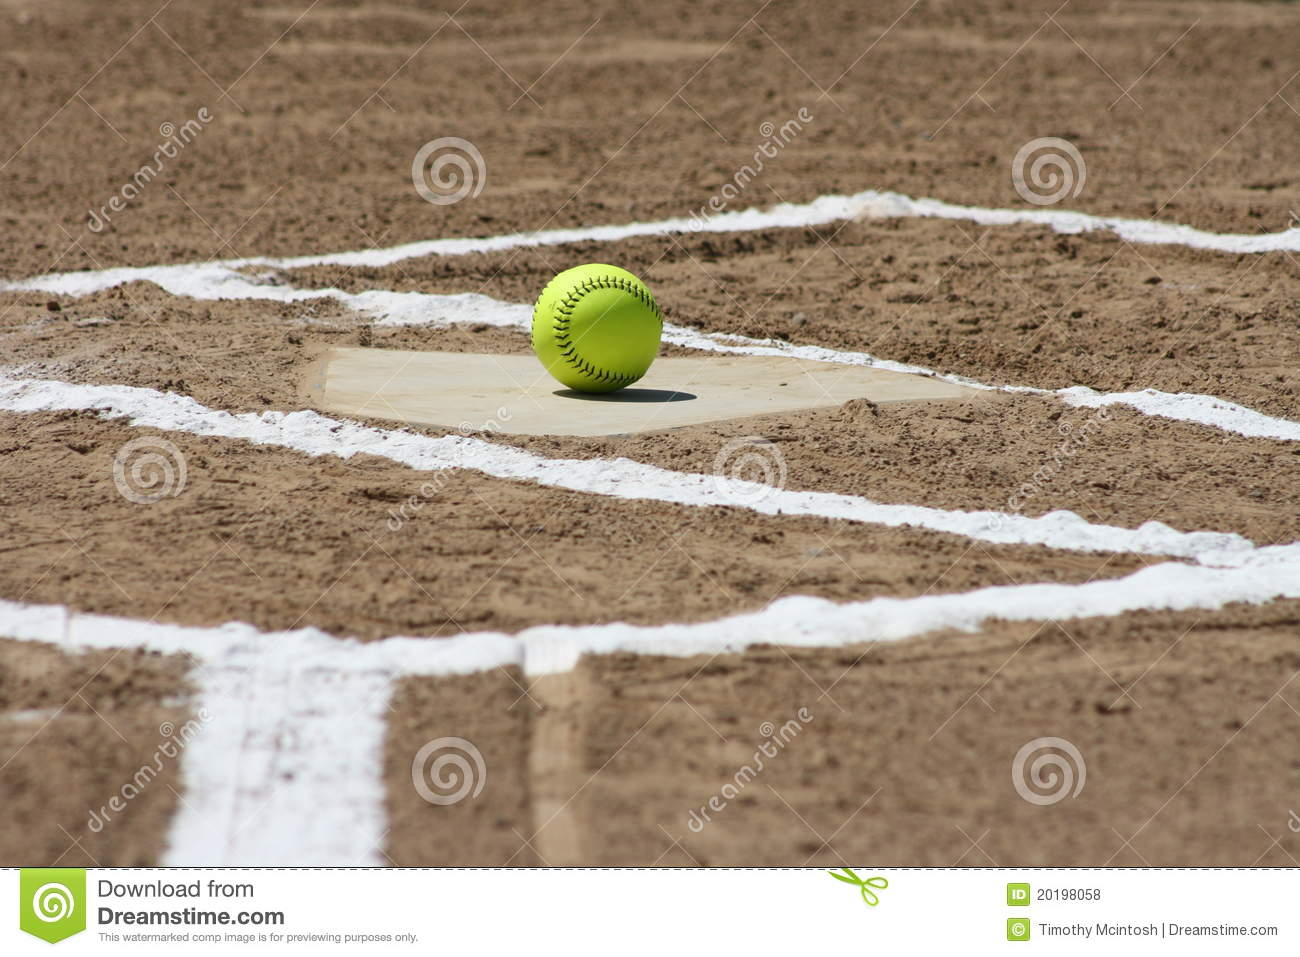 New Softball at home plate